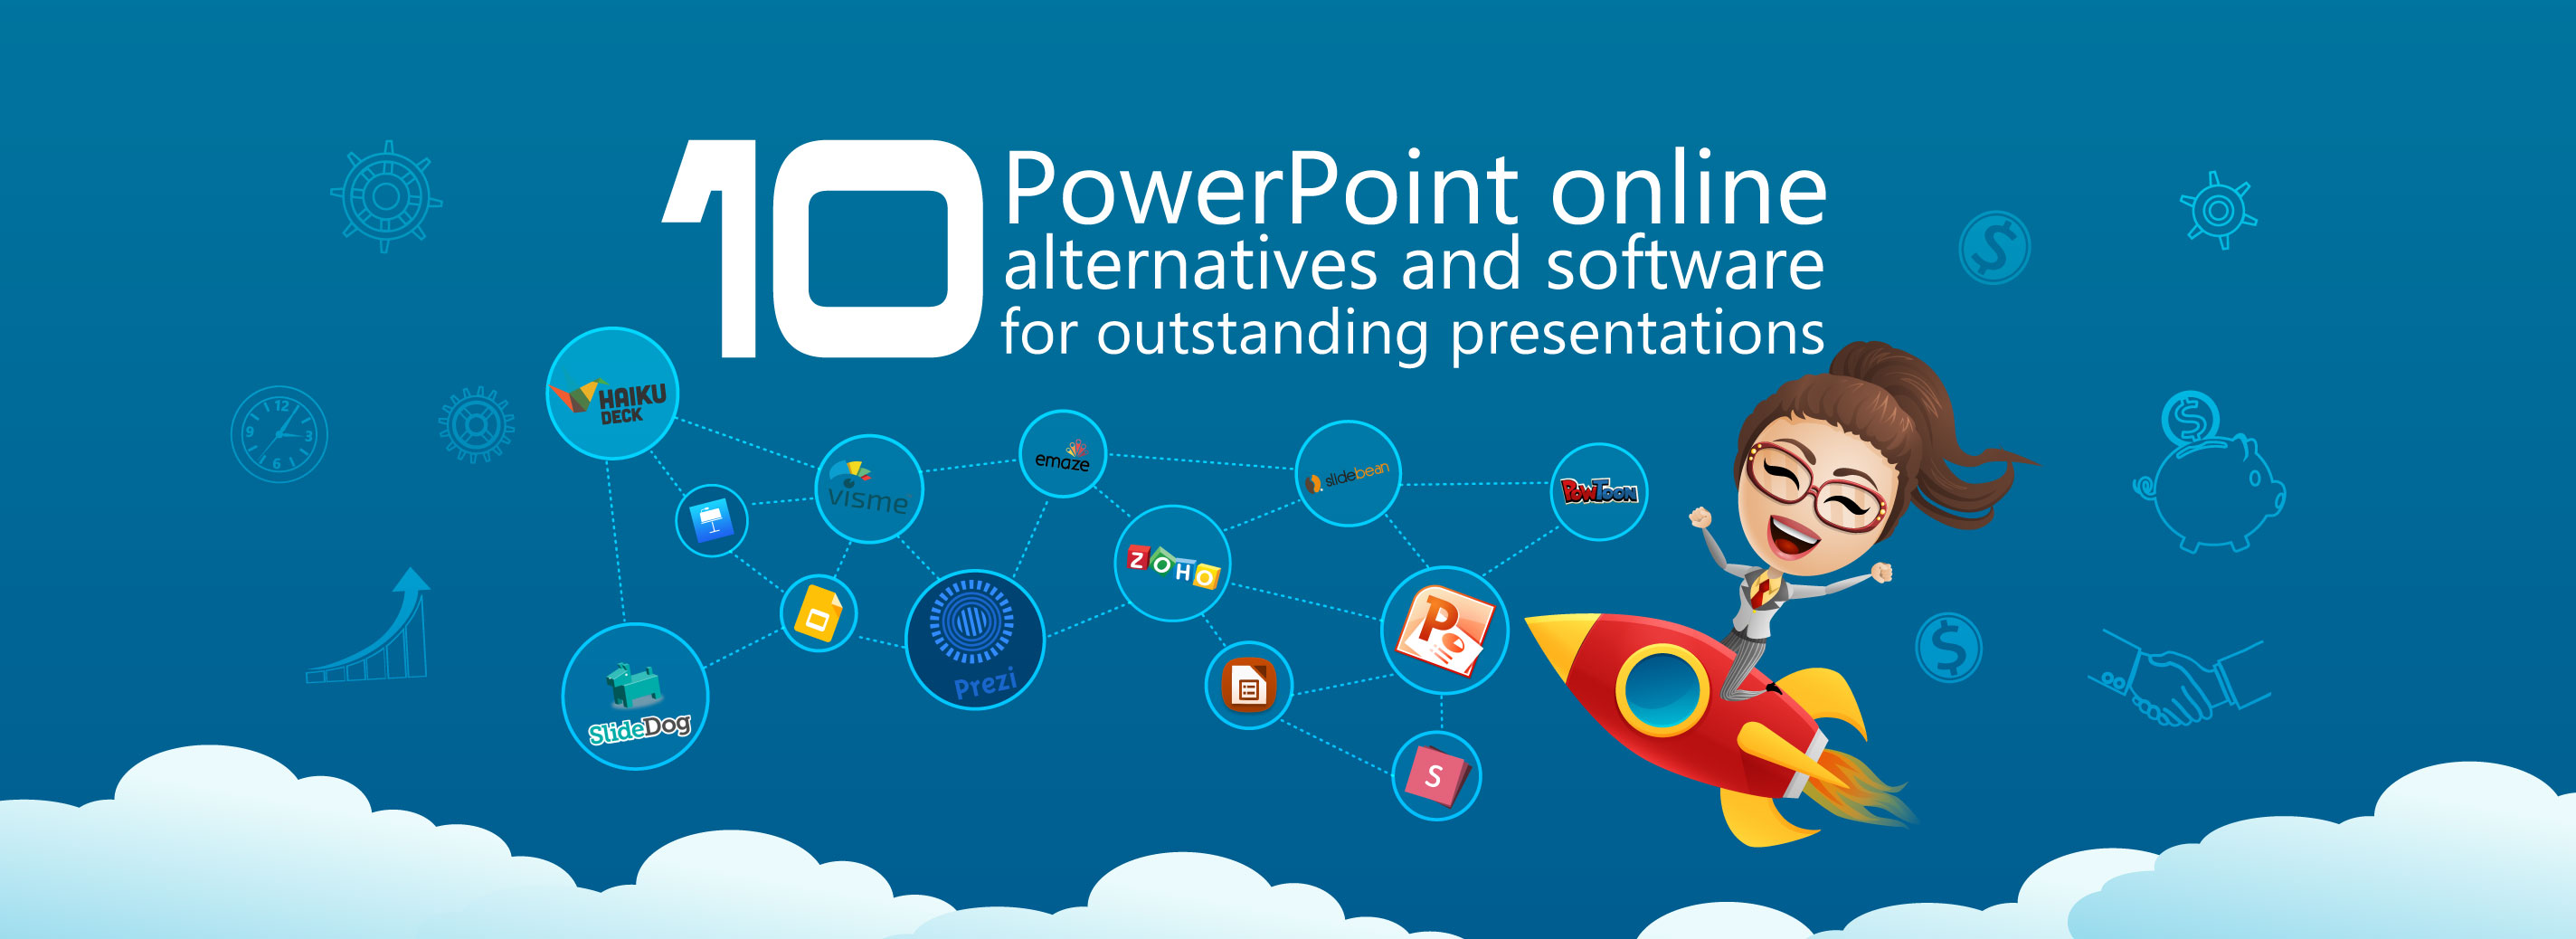 10 powerpoint online alternatives for outstanding presentations